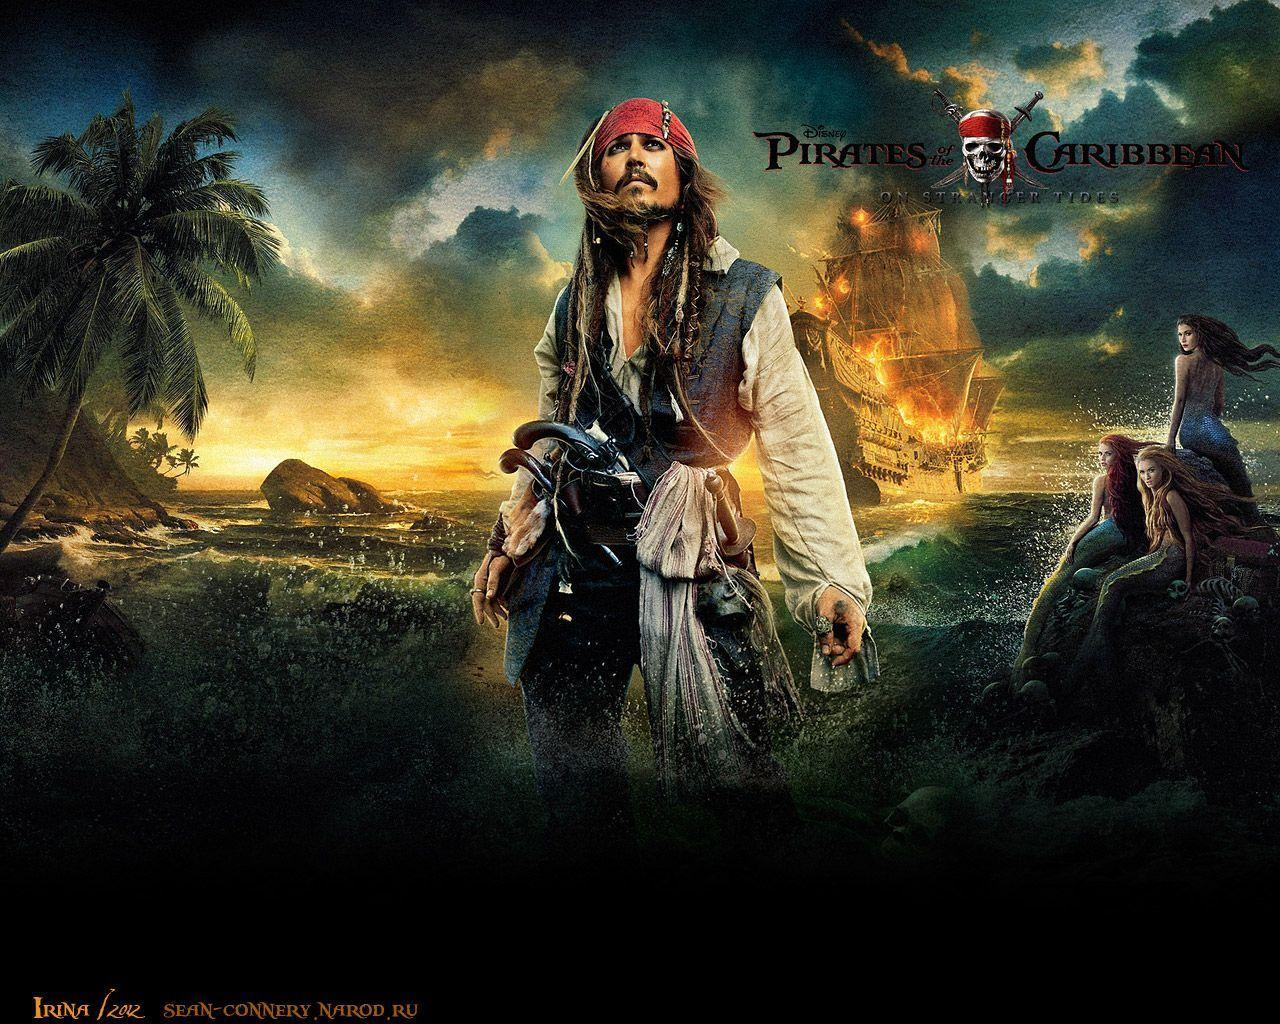 Pirates of the carribean wallpapers wallpaper cave - Pirates of the caribbean wallpaper ...